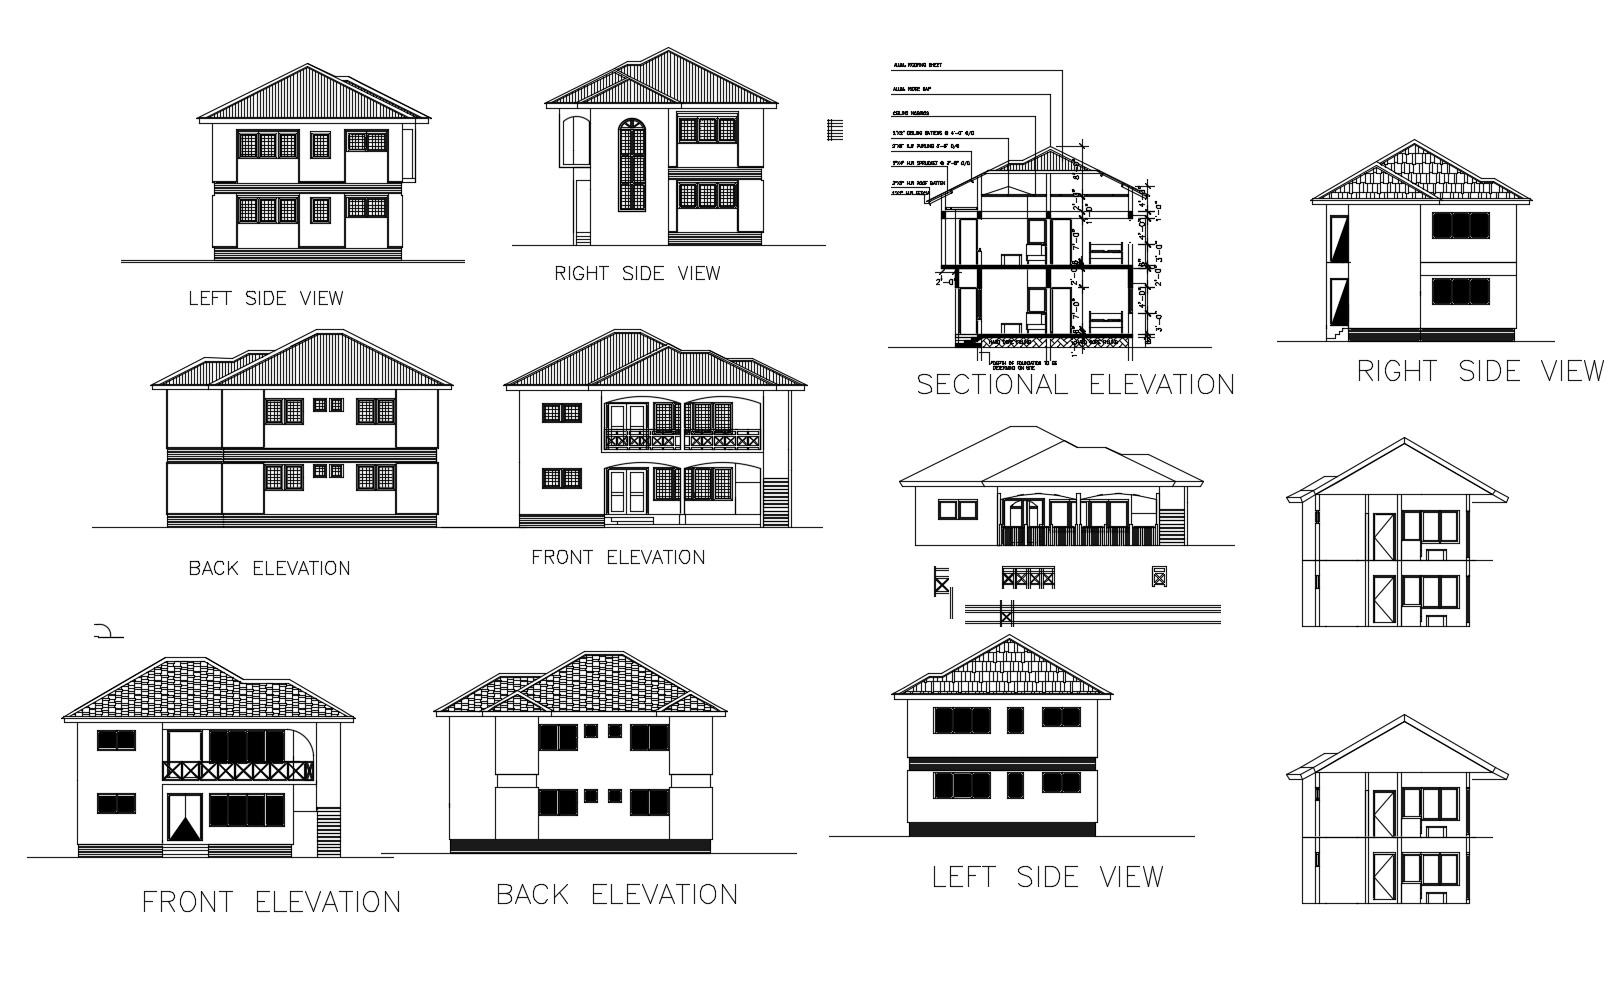 Contemporary house elevation in DWG file